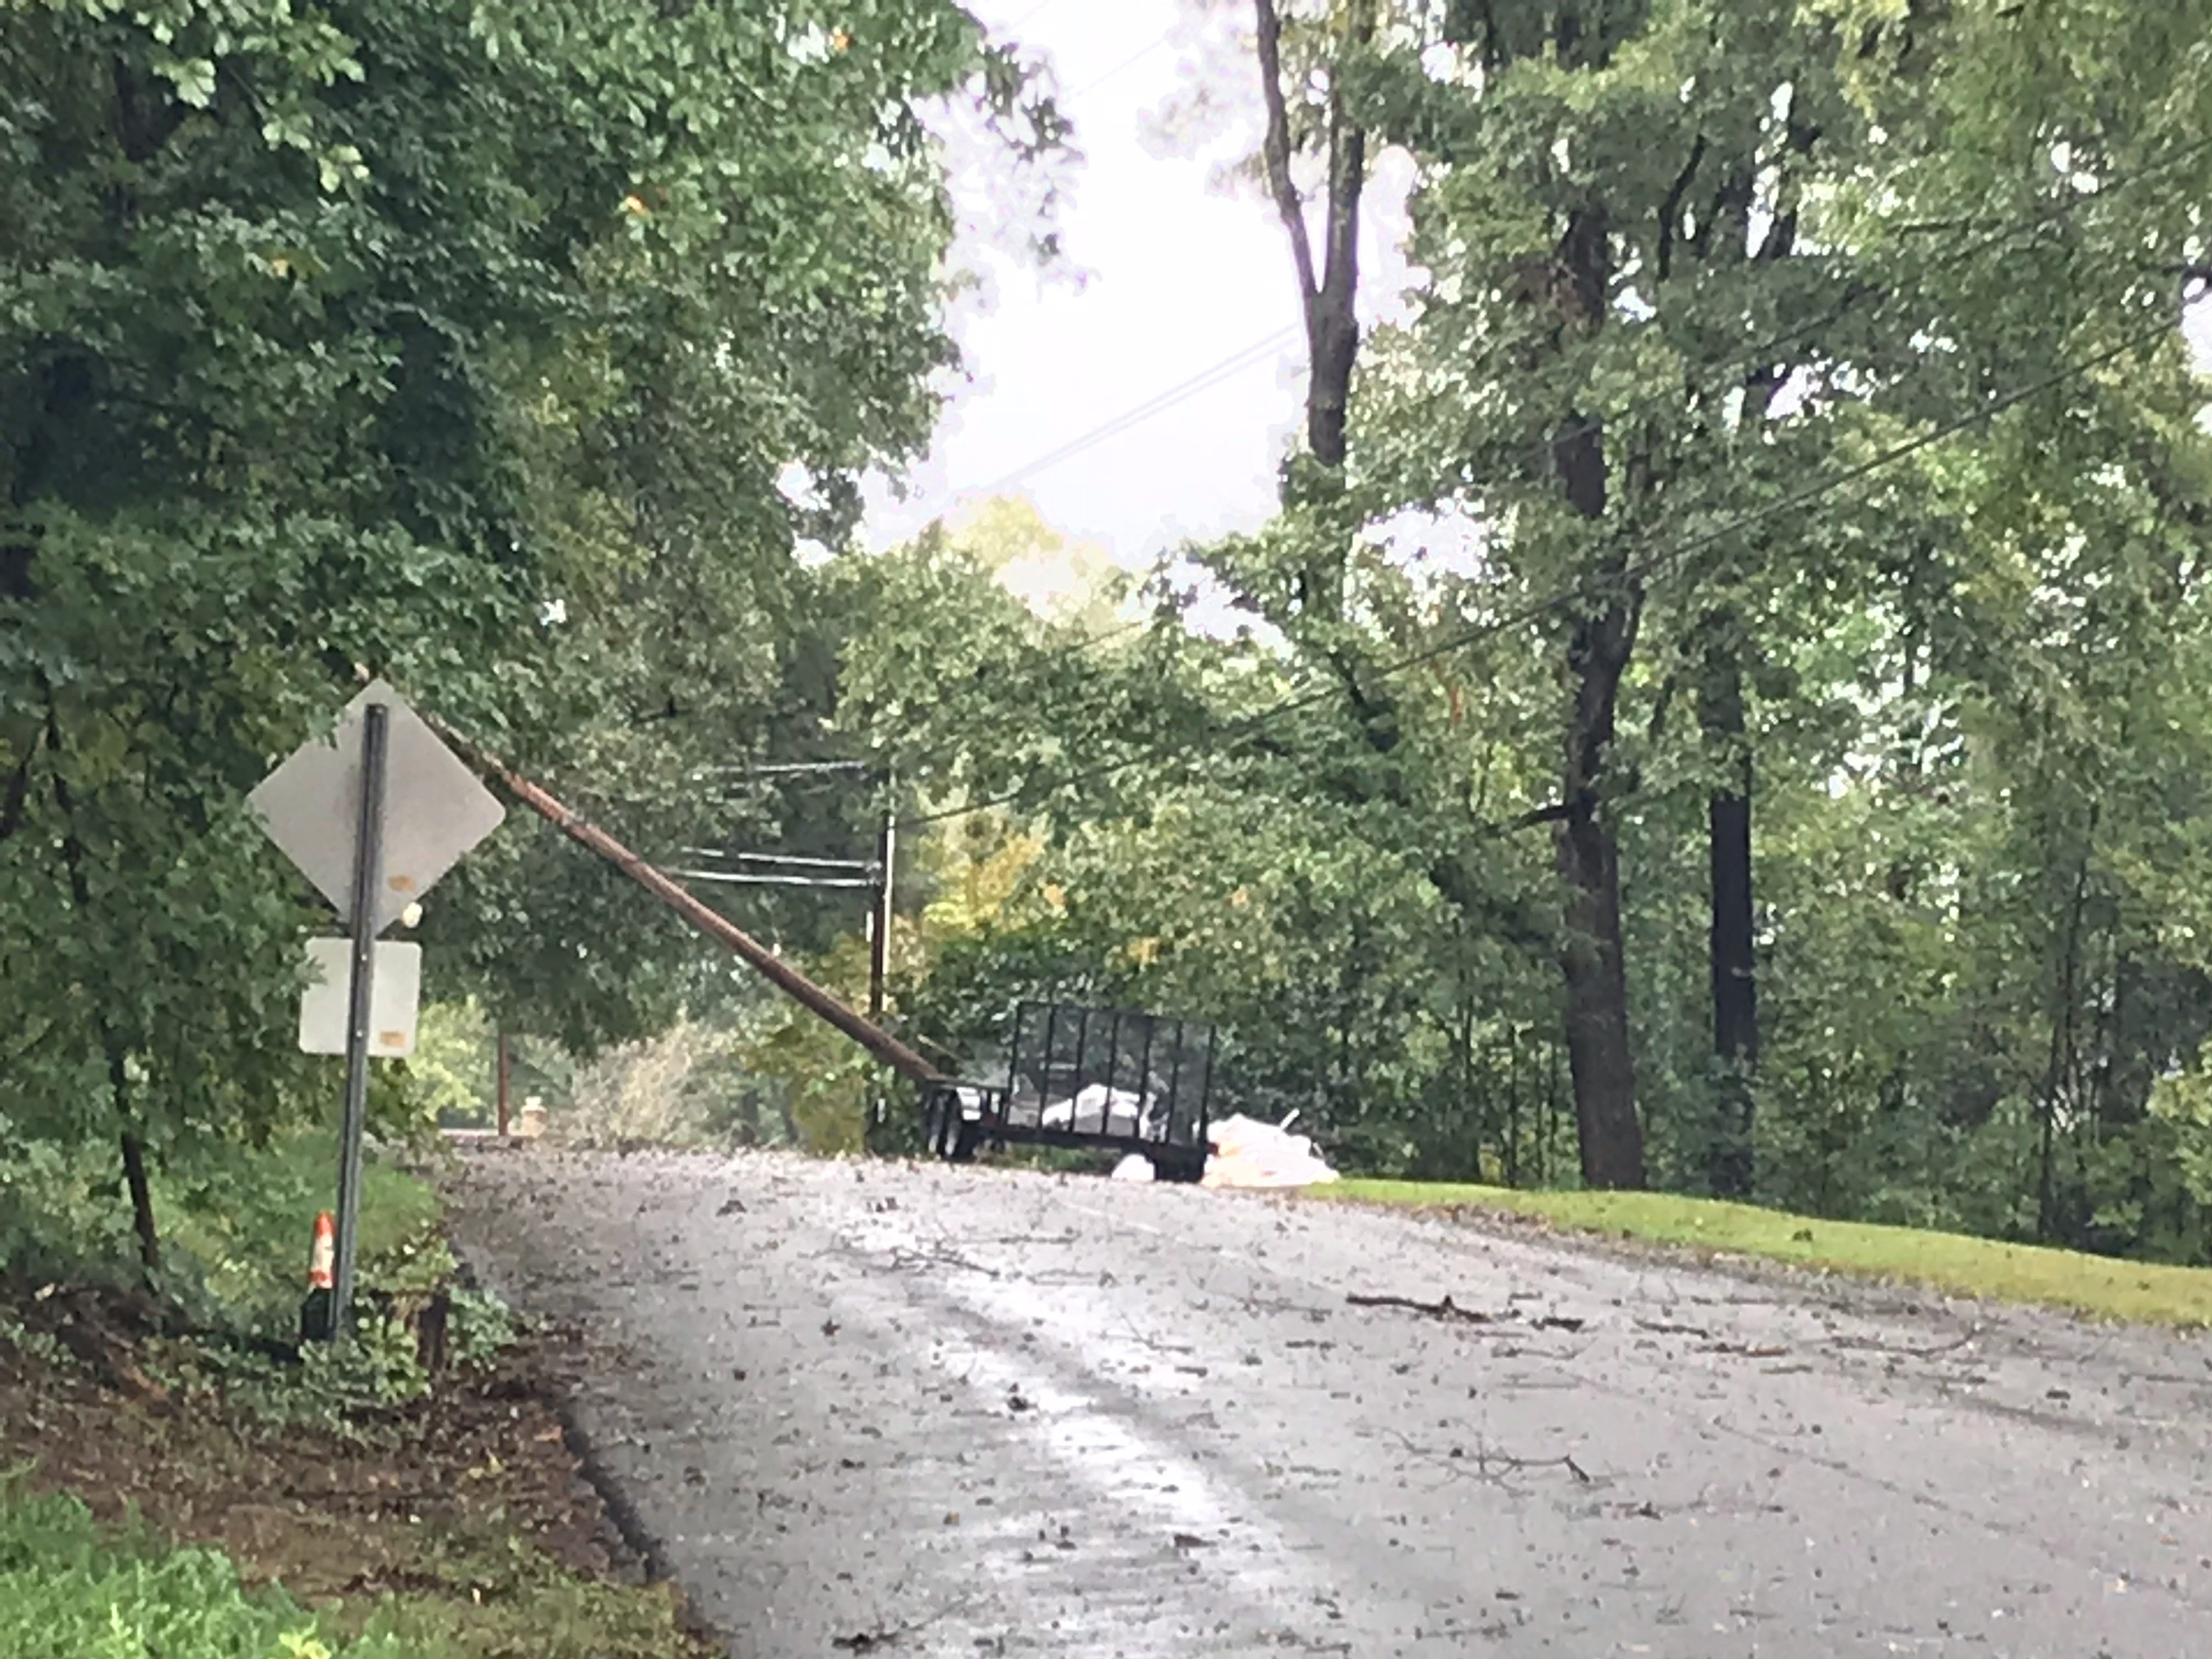 A tree took out a utility pole on Lotus Court in Greenville on Thursday, Oct. 11, 2018, as Tropical Storm Michael moved into the area. Utility crews preparing to cut power to the neighborhood so that the pole can be replaced.